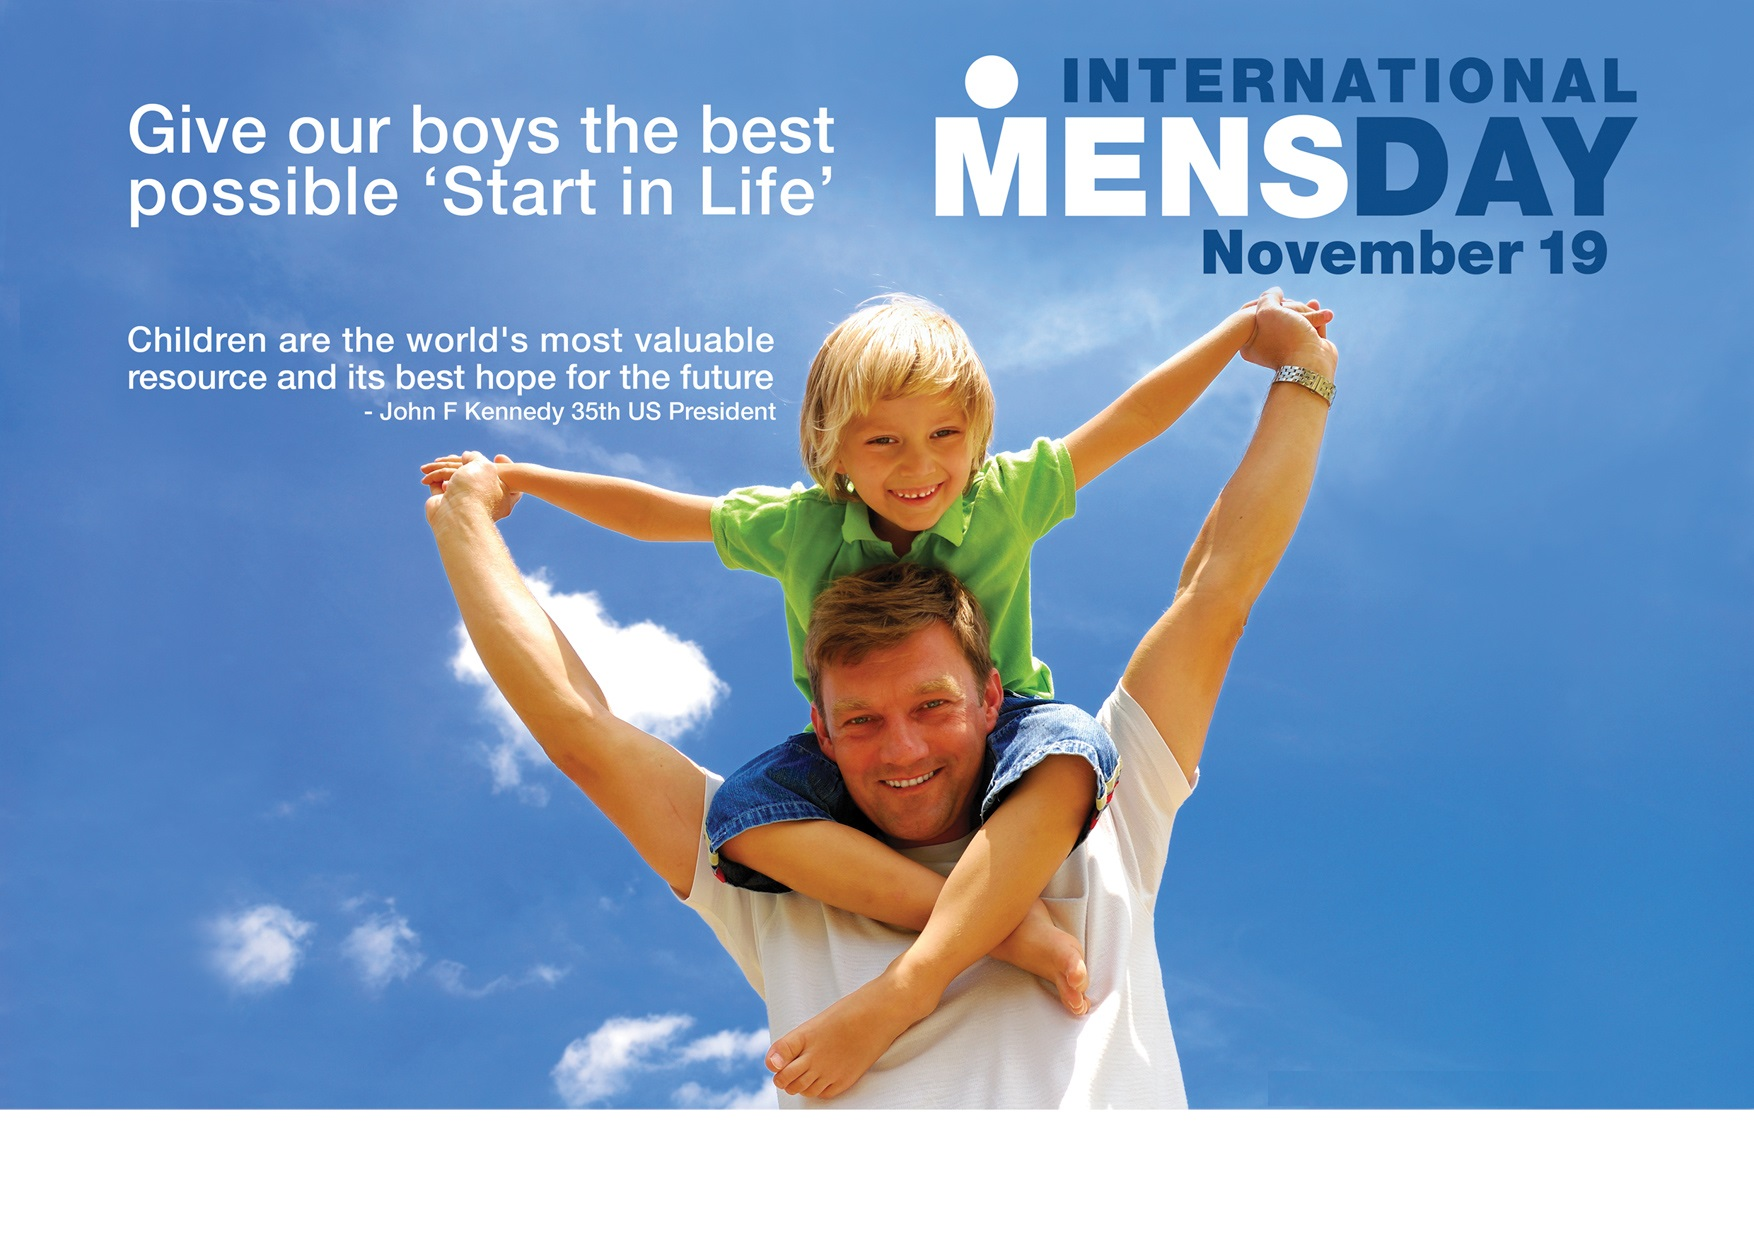 international-mens-day-photos